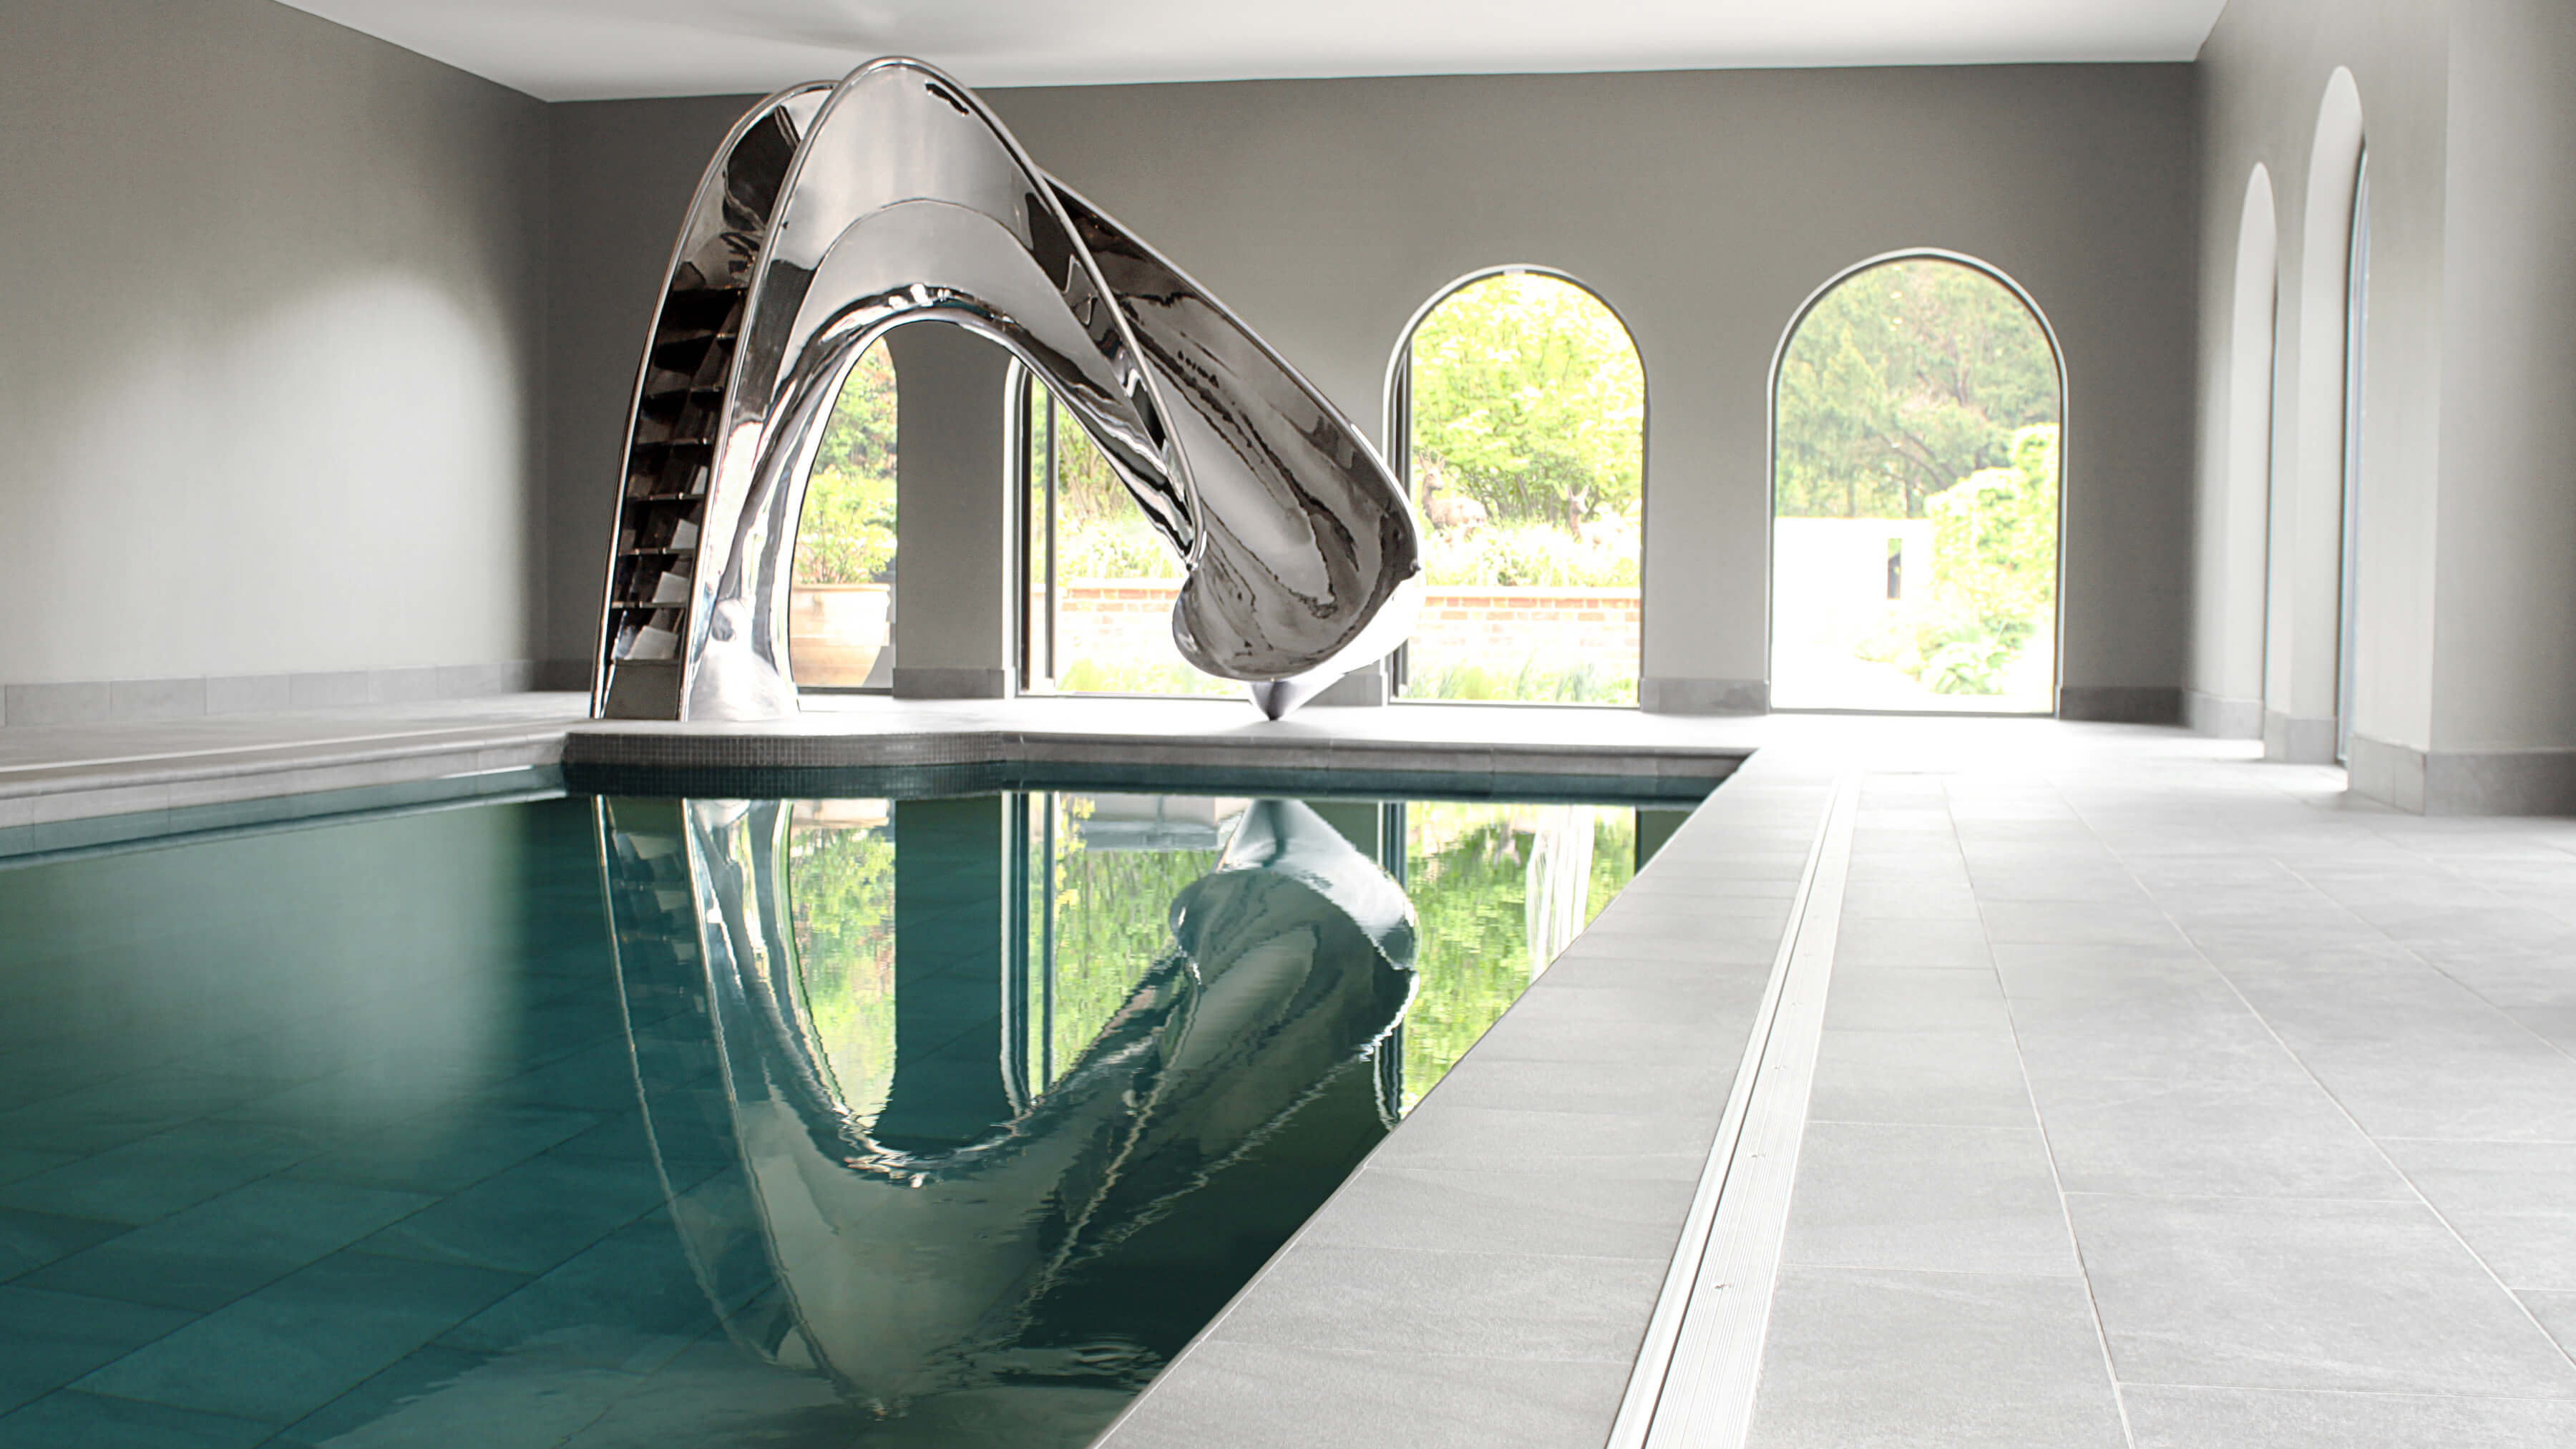 Dramatic sculptural pool slide by Splinterworks in an architectural pool pavillion.